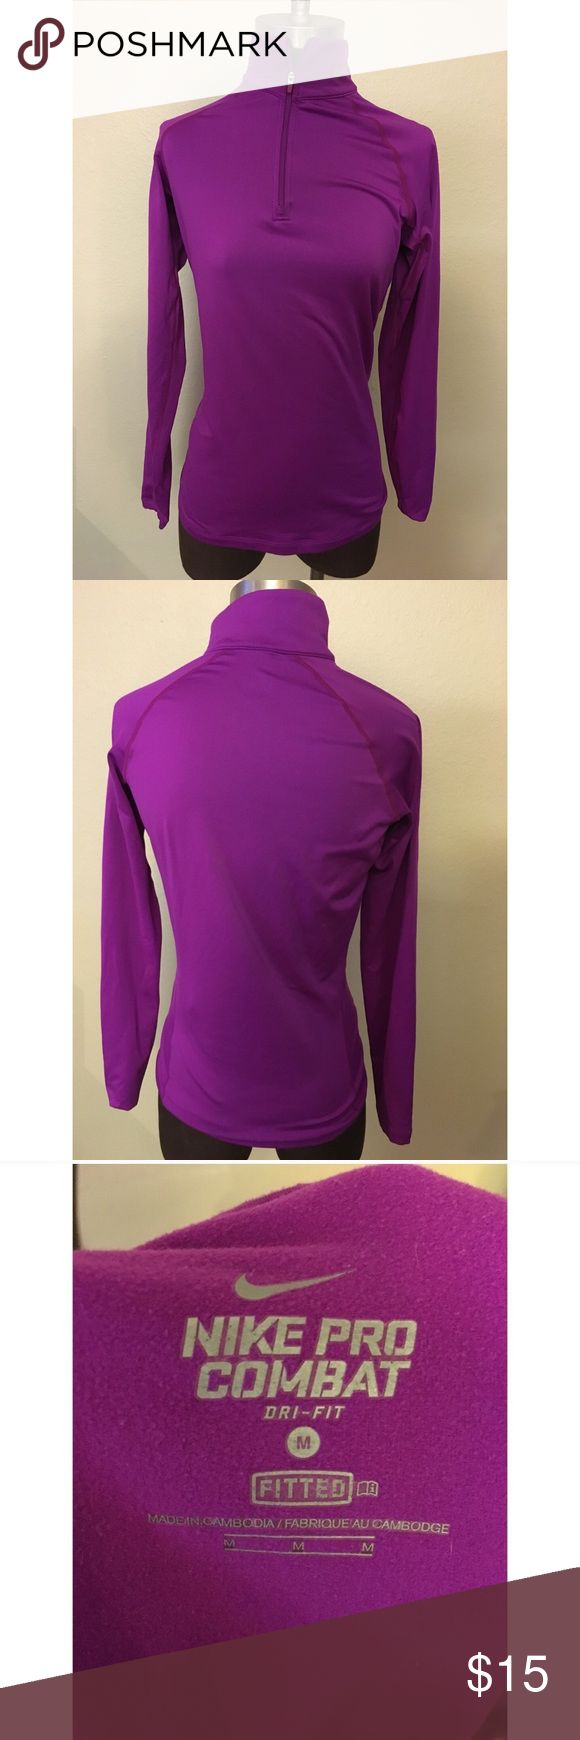 Nike Pro purple zip up Nike Pro purple zip up size medium in grey condition! Super cute and comfortable! Nike Tops